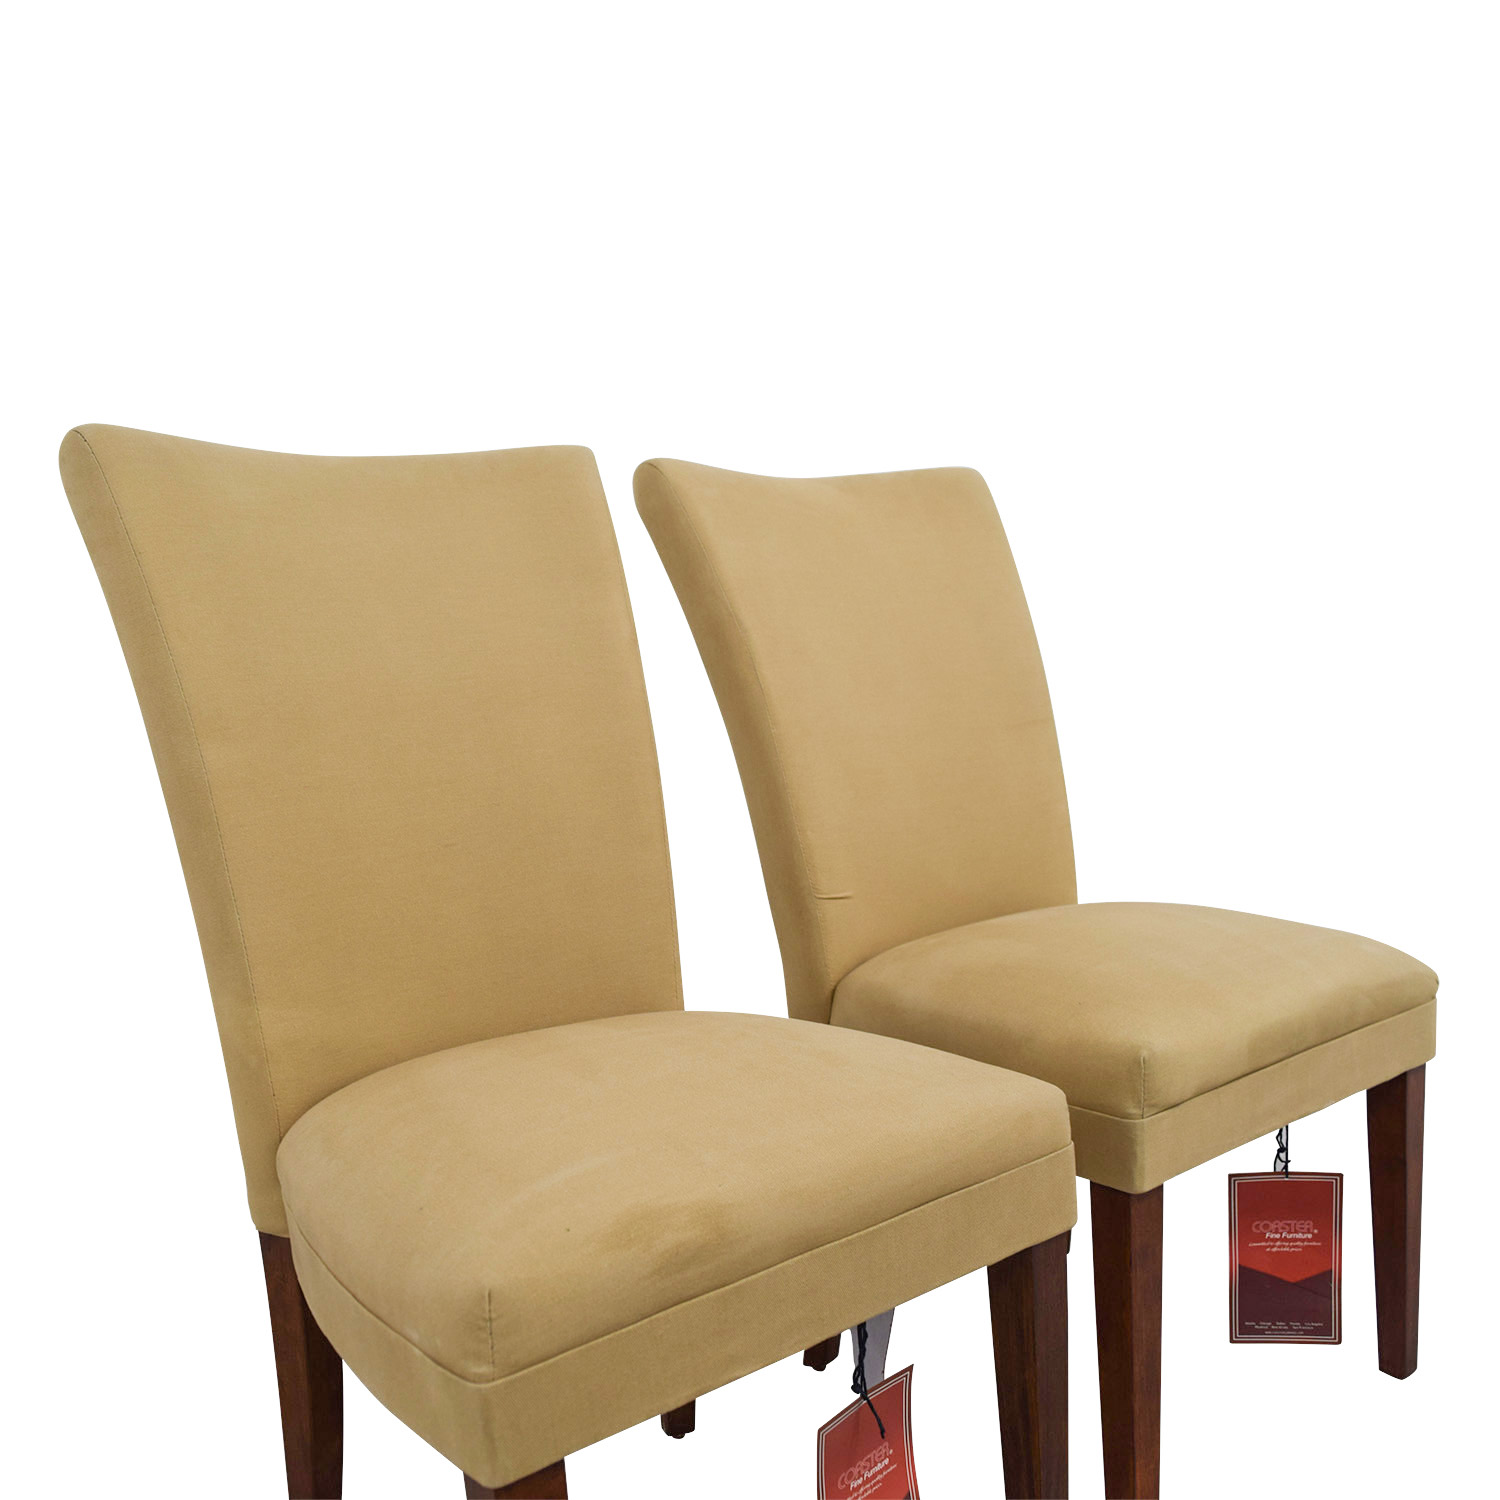 shop Coaster High Back Tan Chairs Coaster Dining Chairs